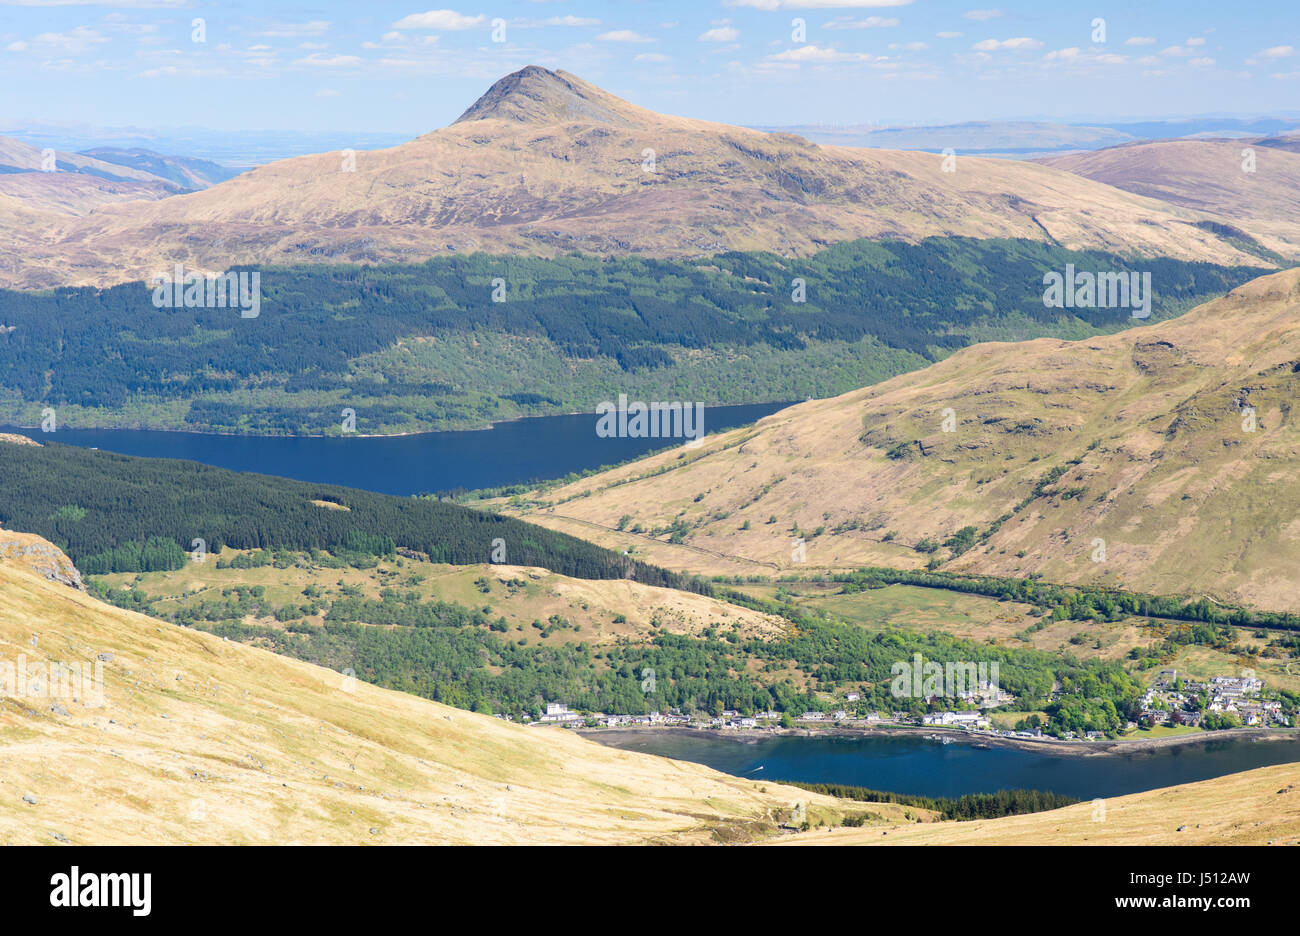 The forested slopes of Ben Lomond mountain rise from the shores of Loch Lomond lake, beyond Arrochar village, in - Stock Image